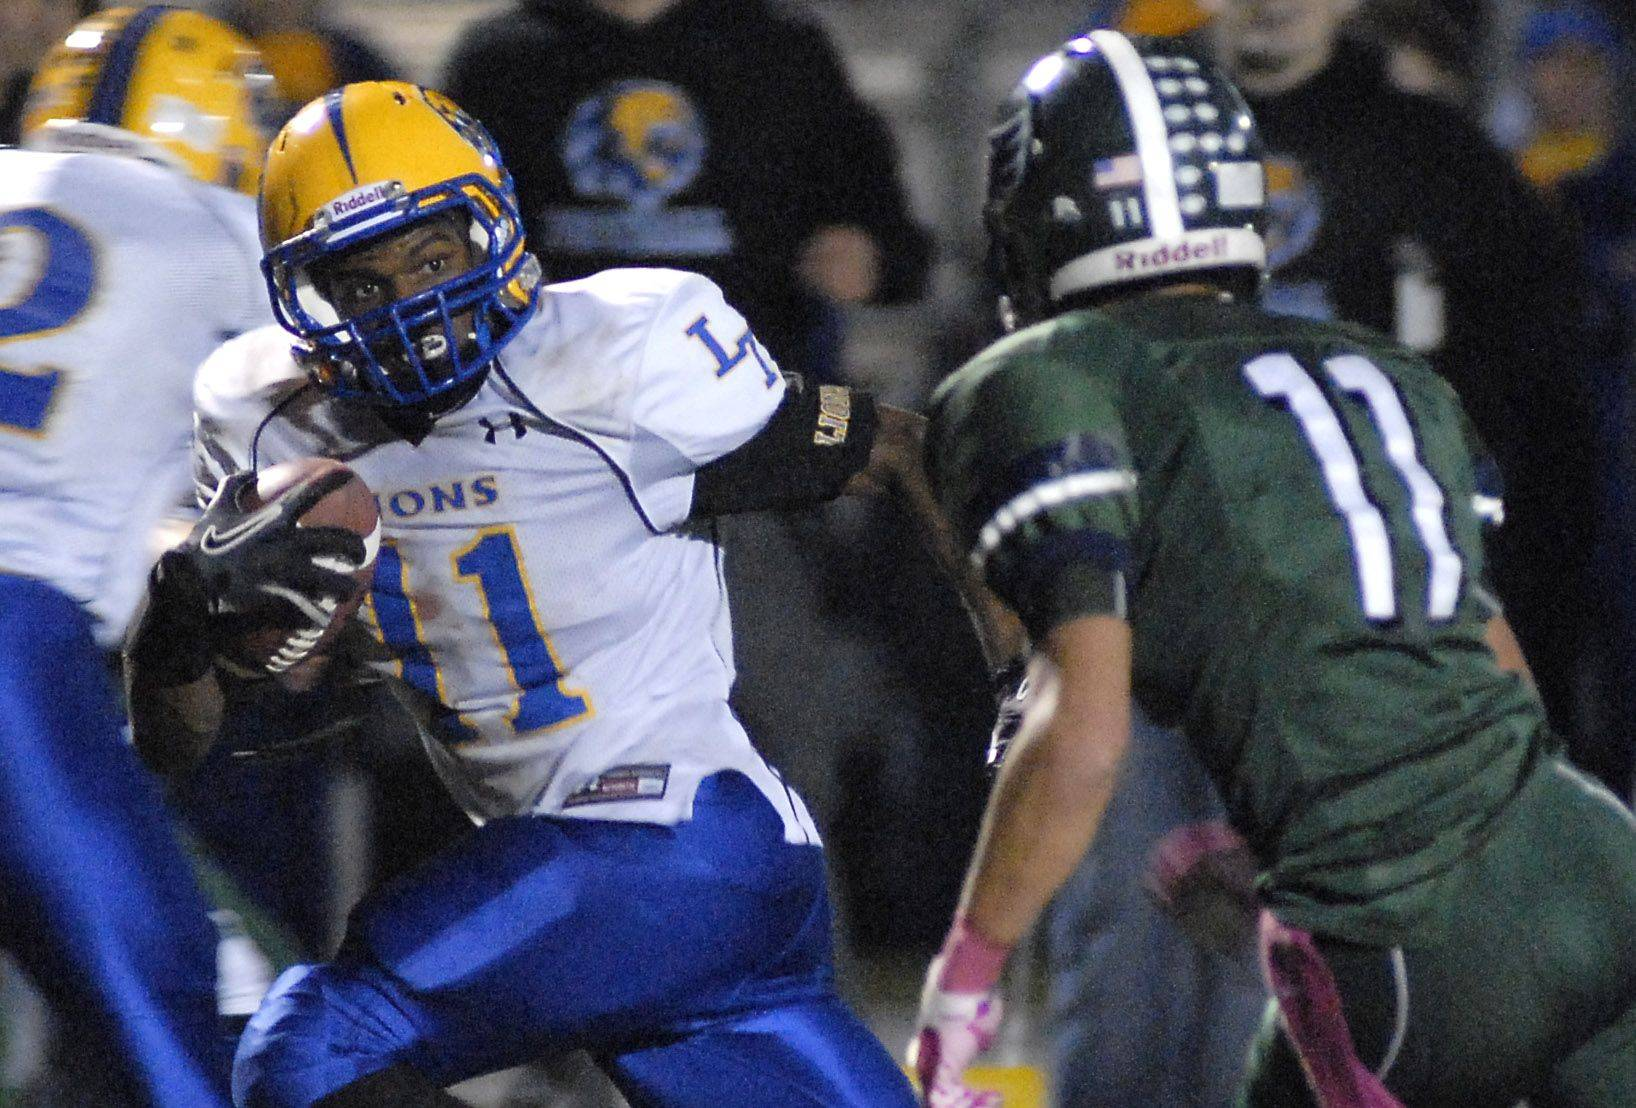 Lyons Township's Matthew Harris zips past Bartlett's Kyle Garcia to score the game-winning touchdown in Lyons' 45-42 come-from-behind win over the Hawks in the Class 8A playoffs at Millennium Field in Streamwood Saturday night.